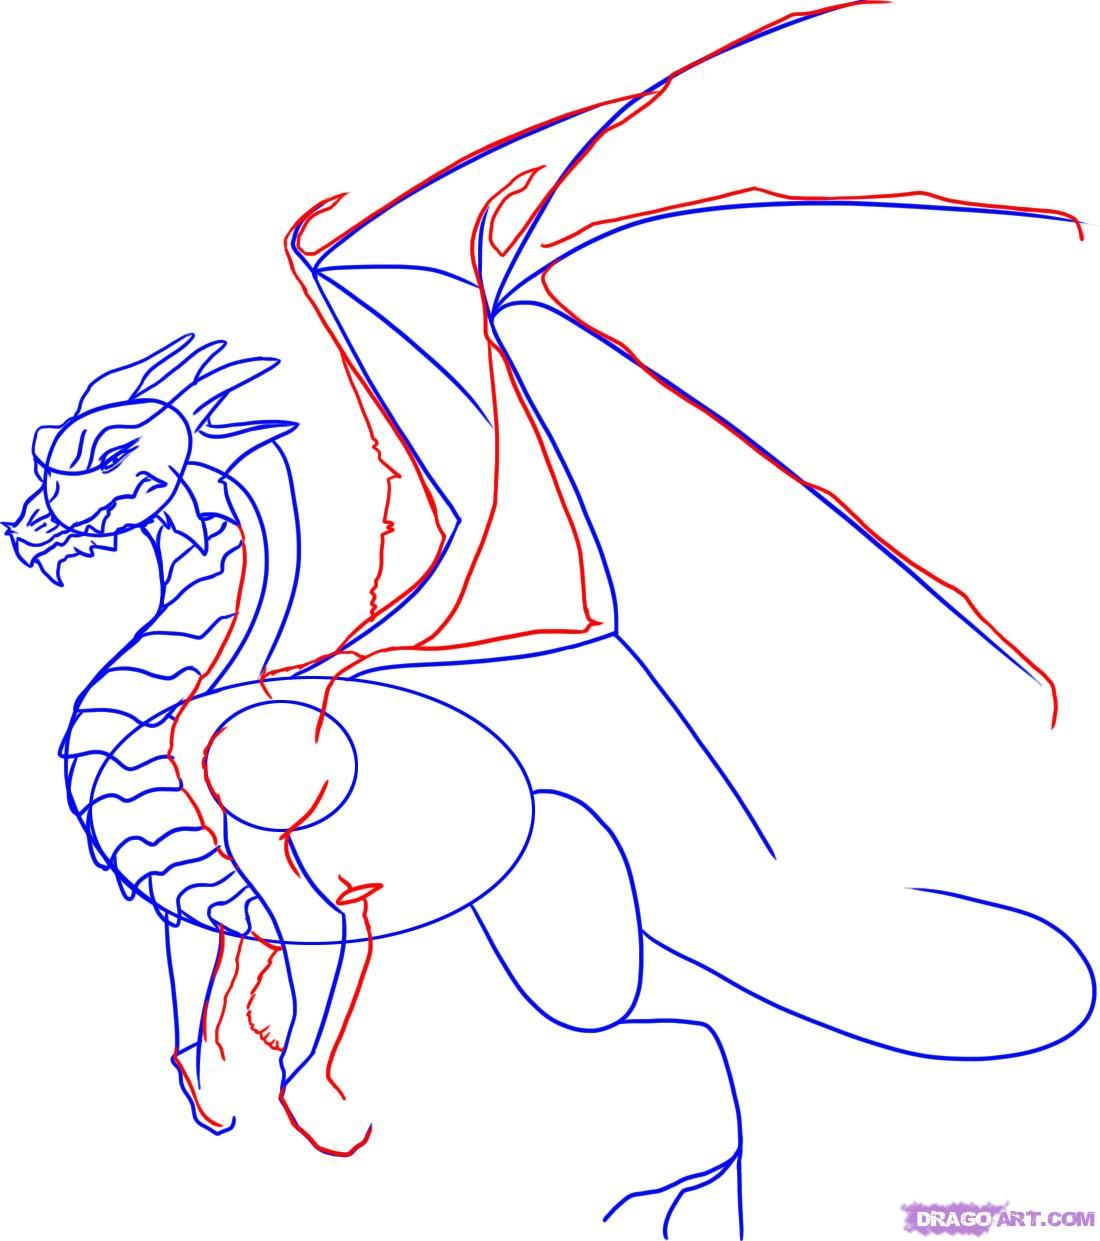 How To Draw A Dragon Step By Step Step 4